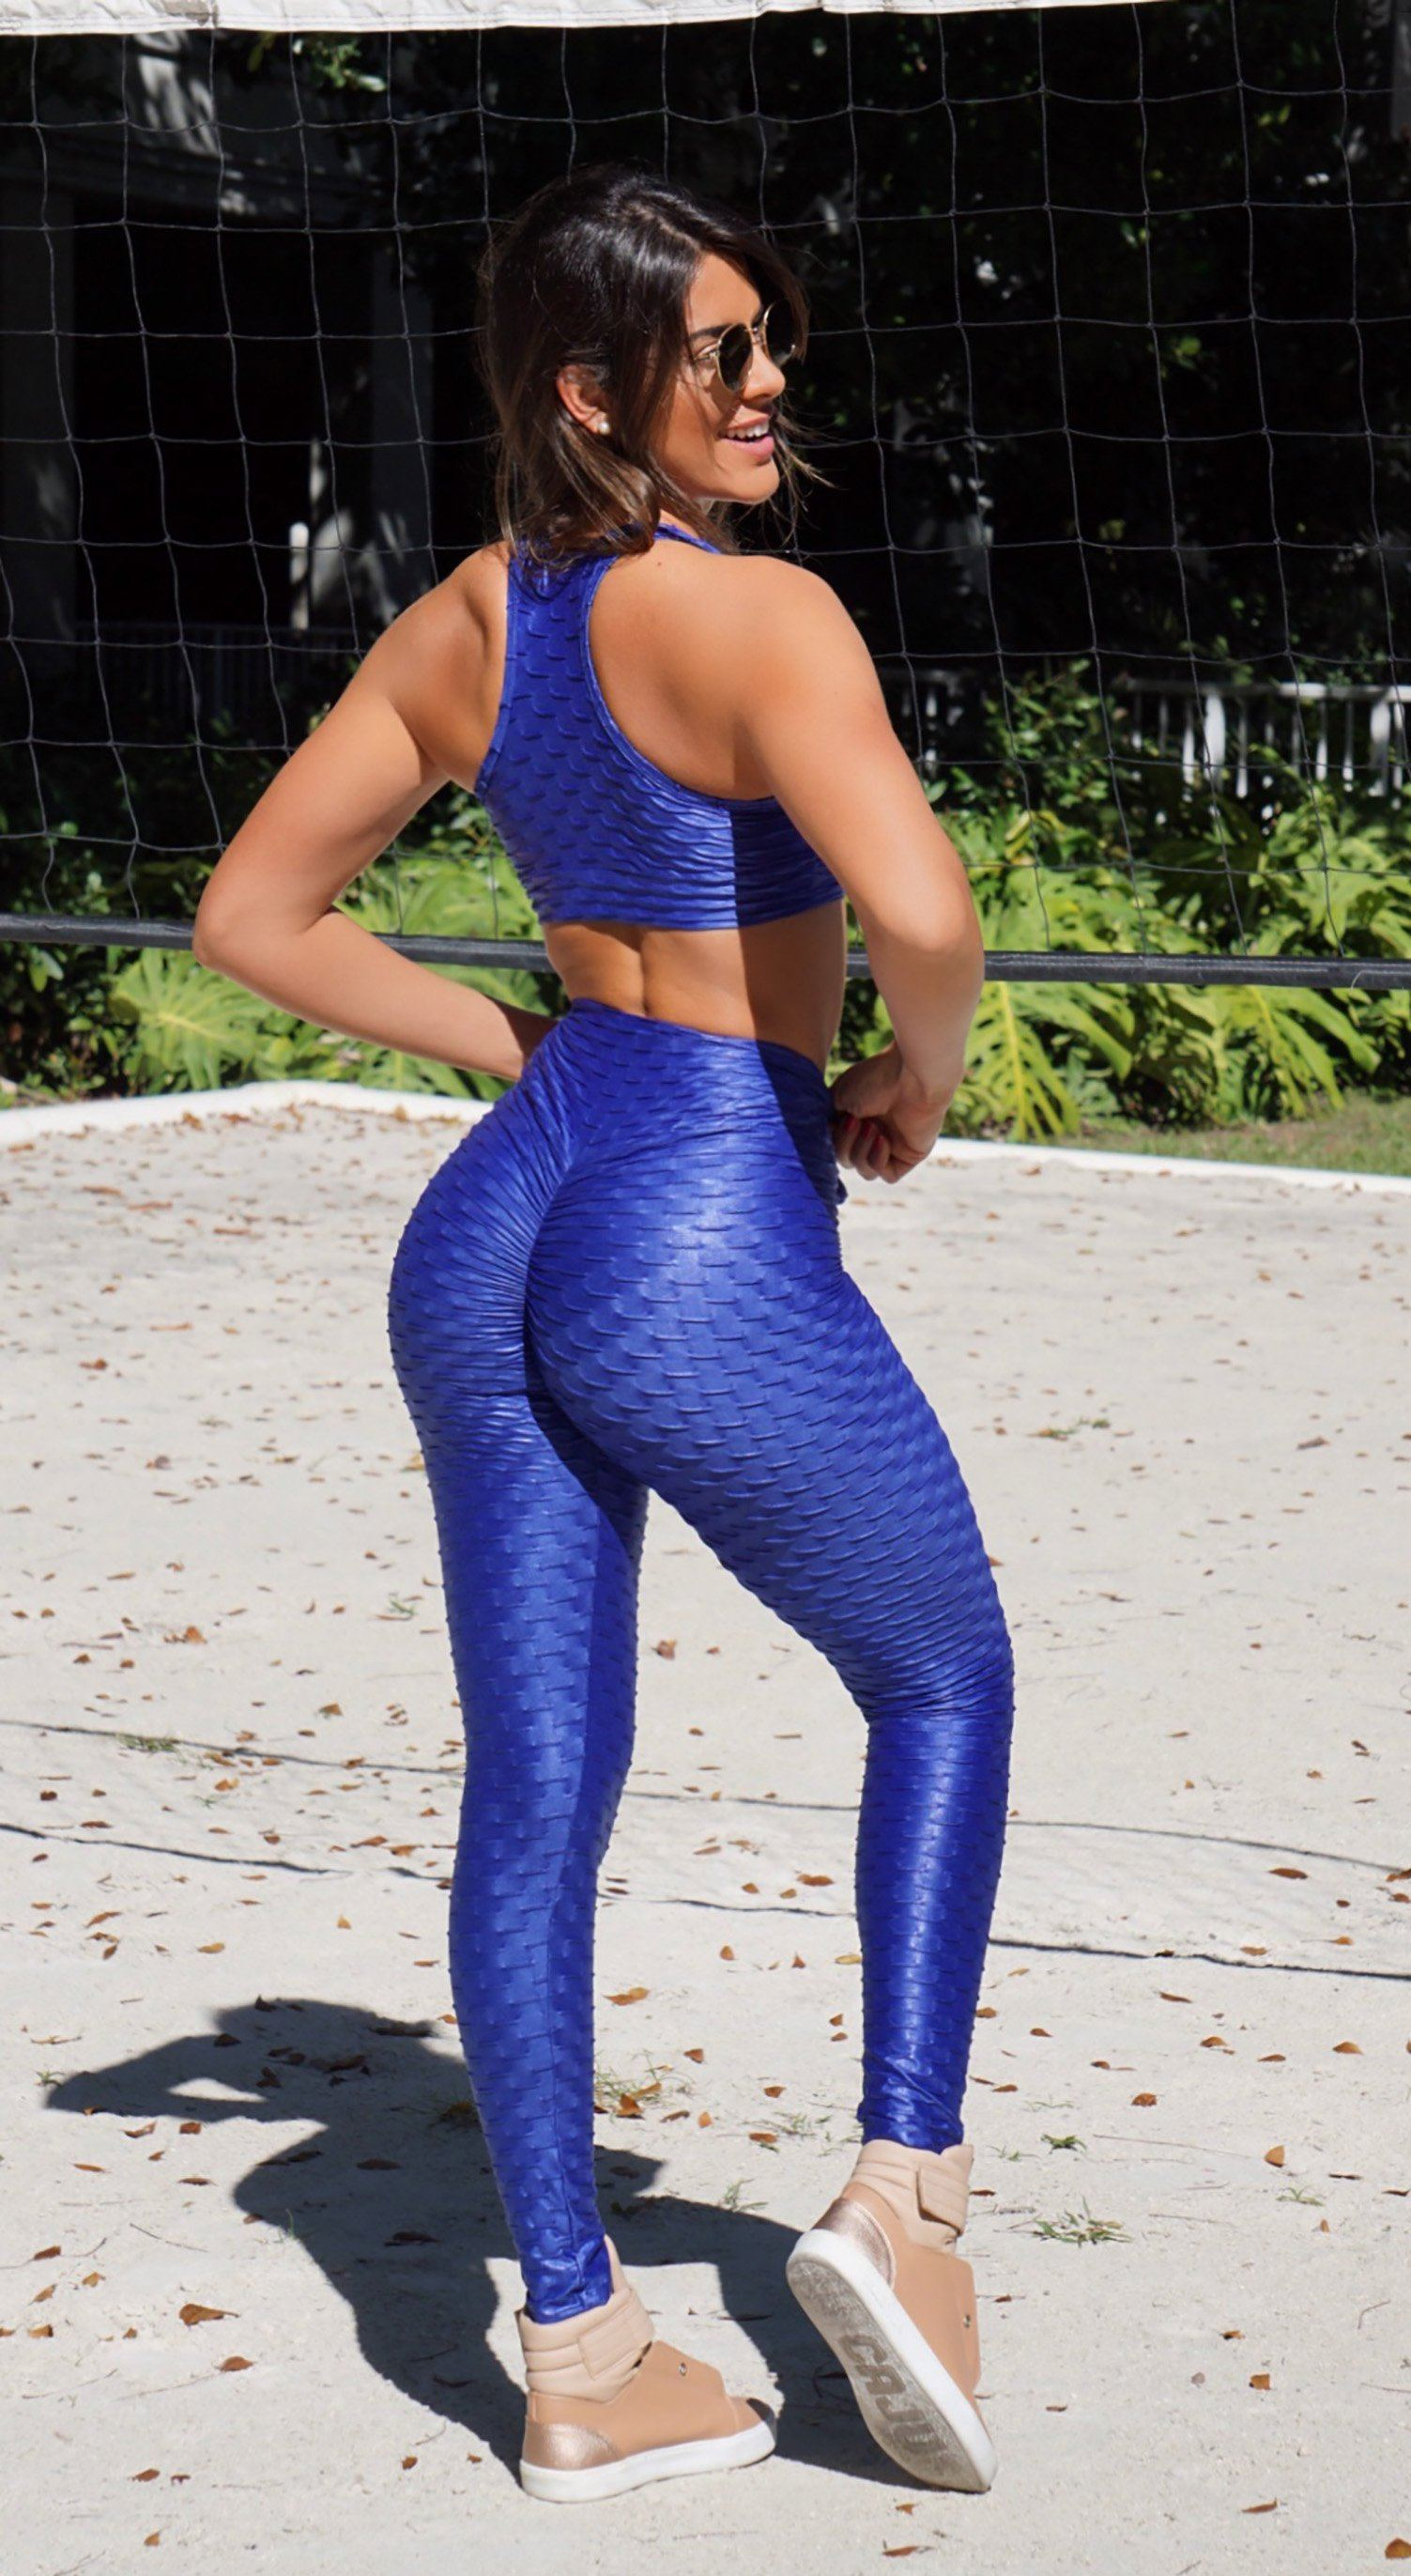 Top Rio Shop - Brazilian Workout Leggings - High Waist Zero Flaws Textured  Shiny Royal Blue 76623dab0